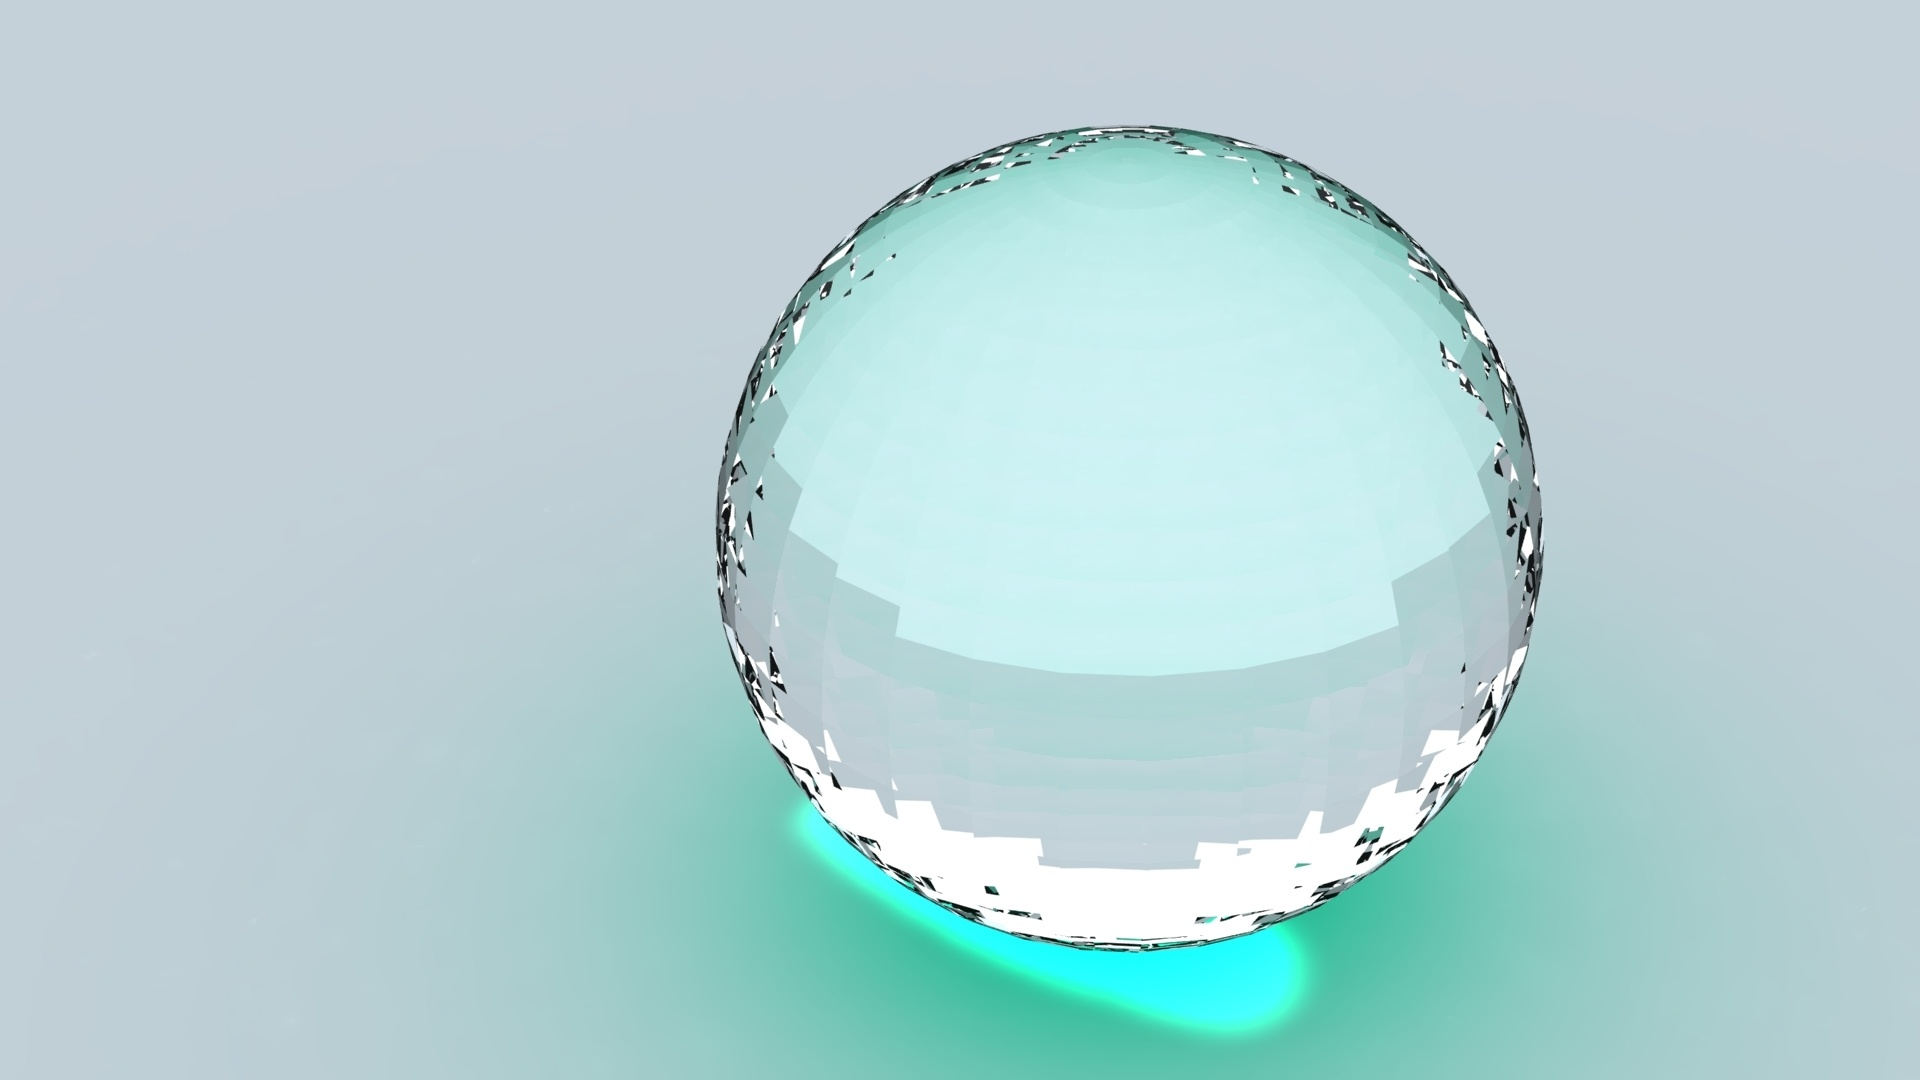 Ball Glass wallpaper for pc